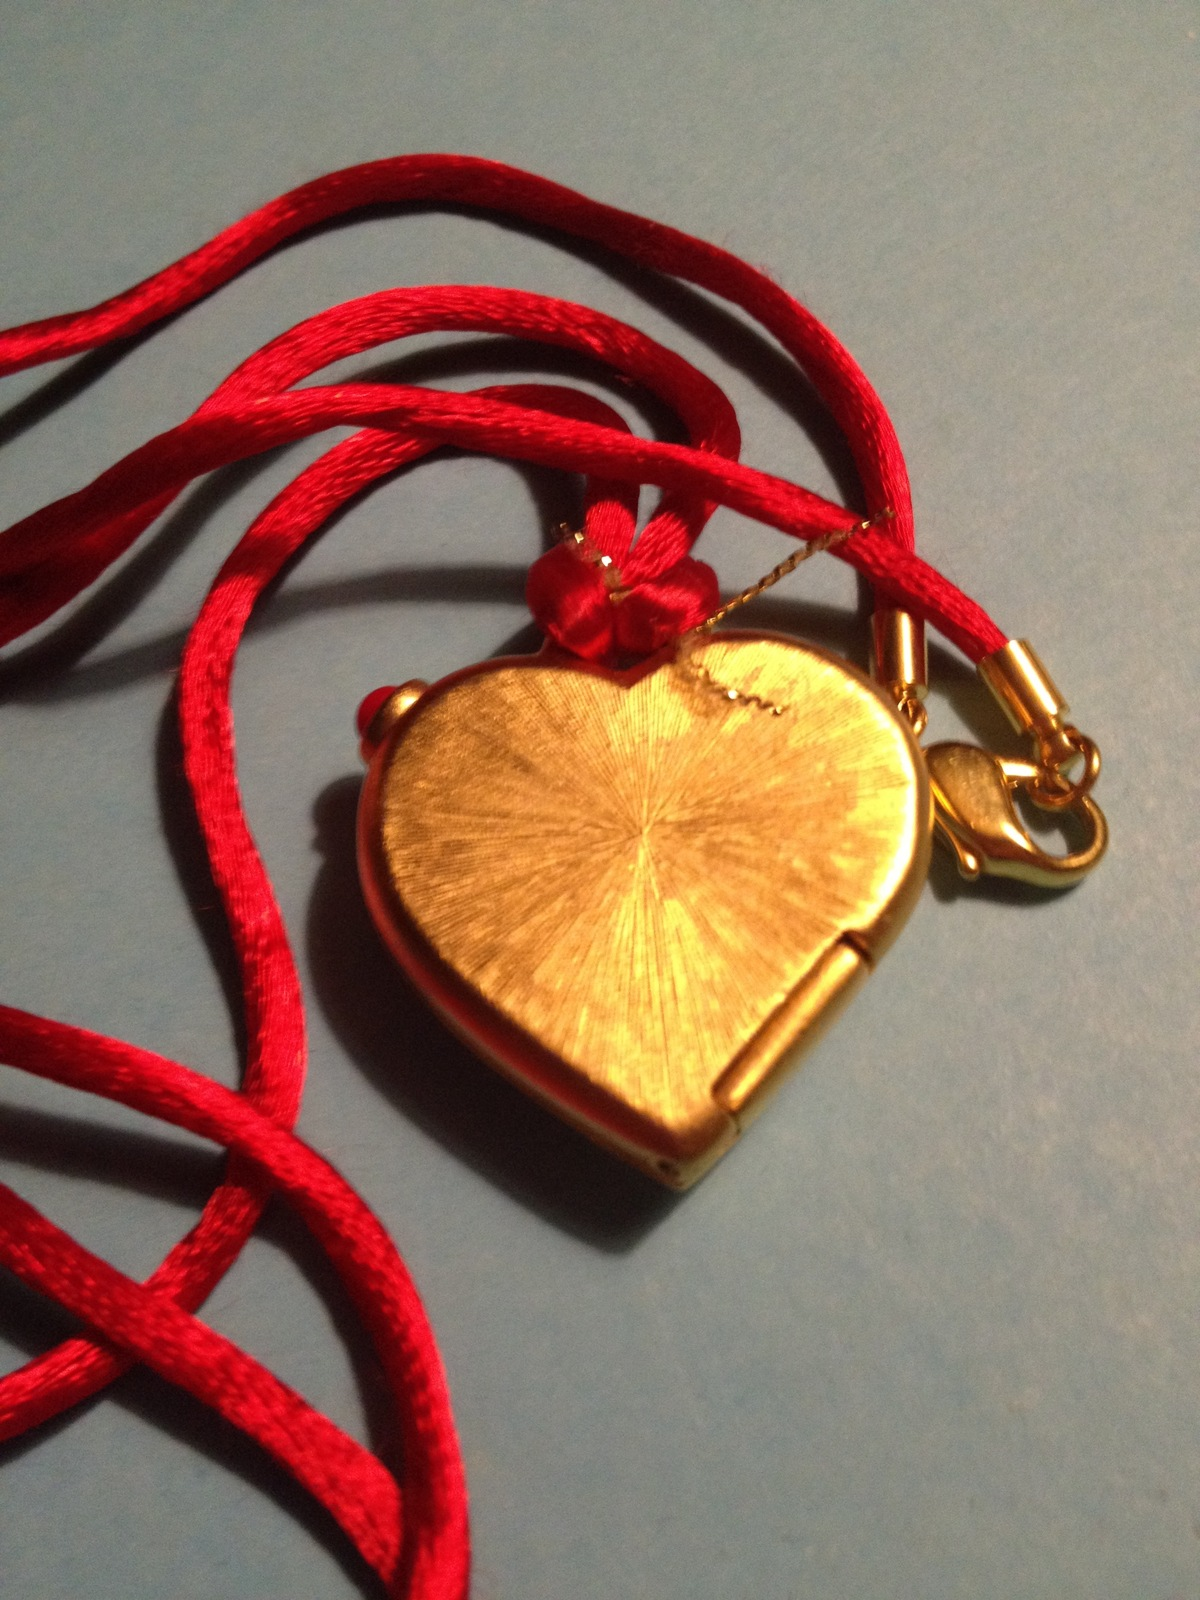 Estee Lauder LOVE HEART 2011 Solid Perfume Compact and Necklace - FREE SHIPPING